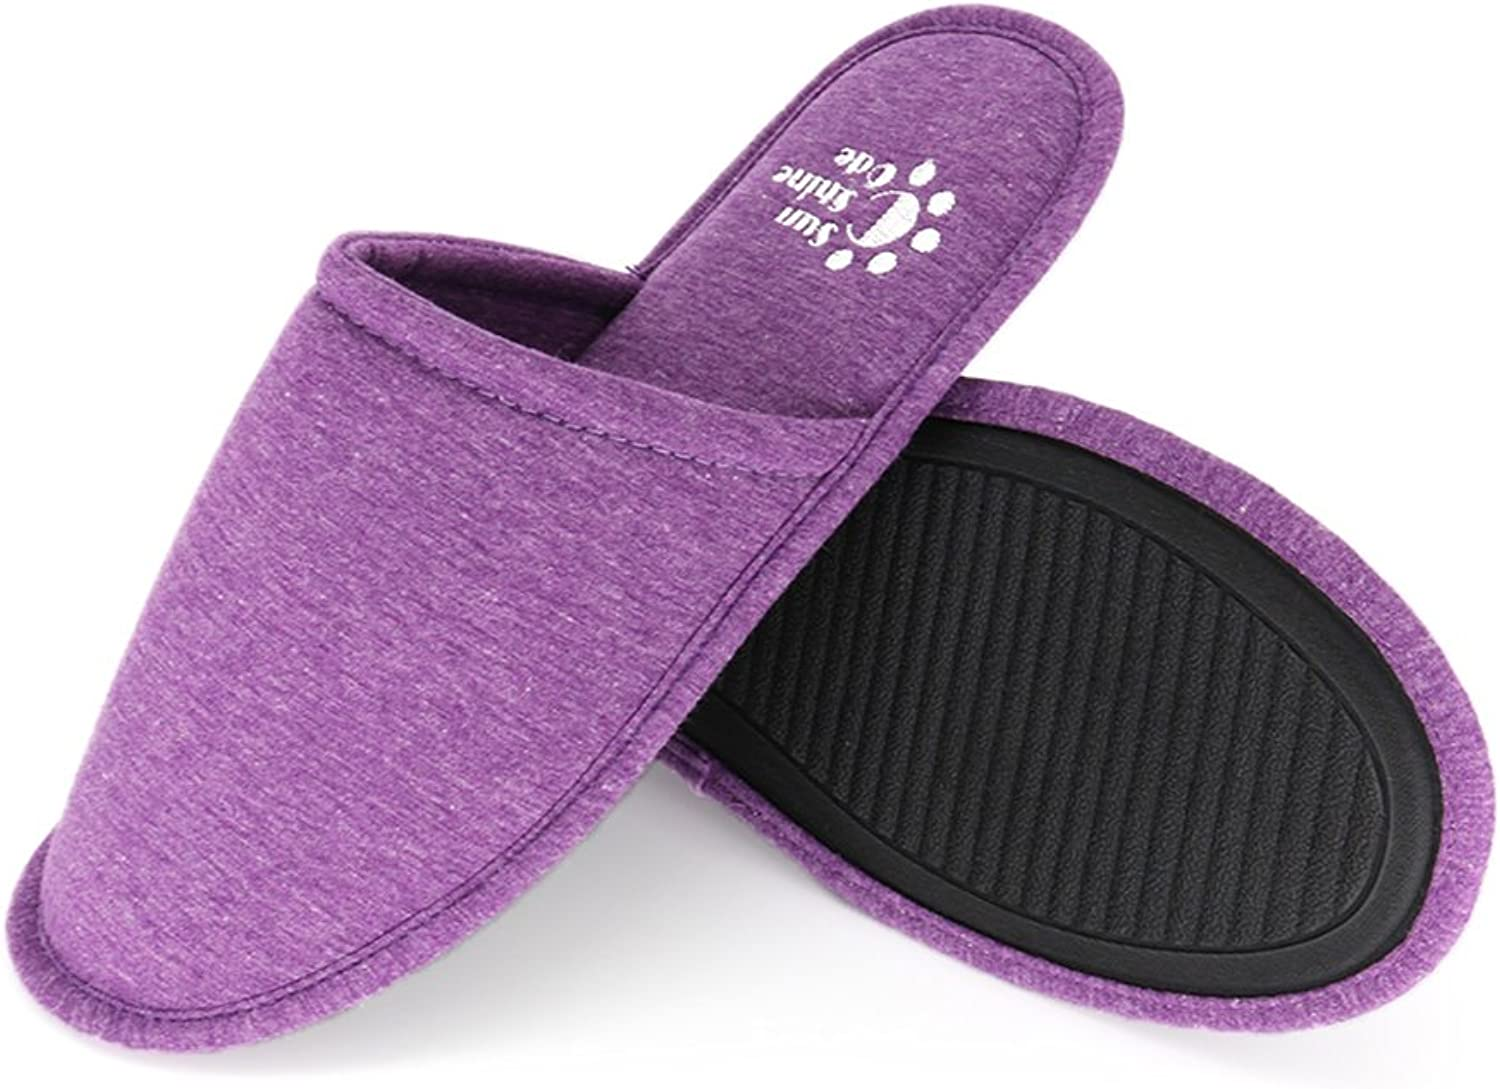 SunnyCode Women's Cotton House Washable Slippers with Travel Bag